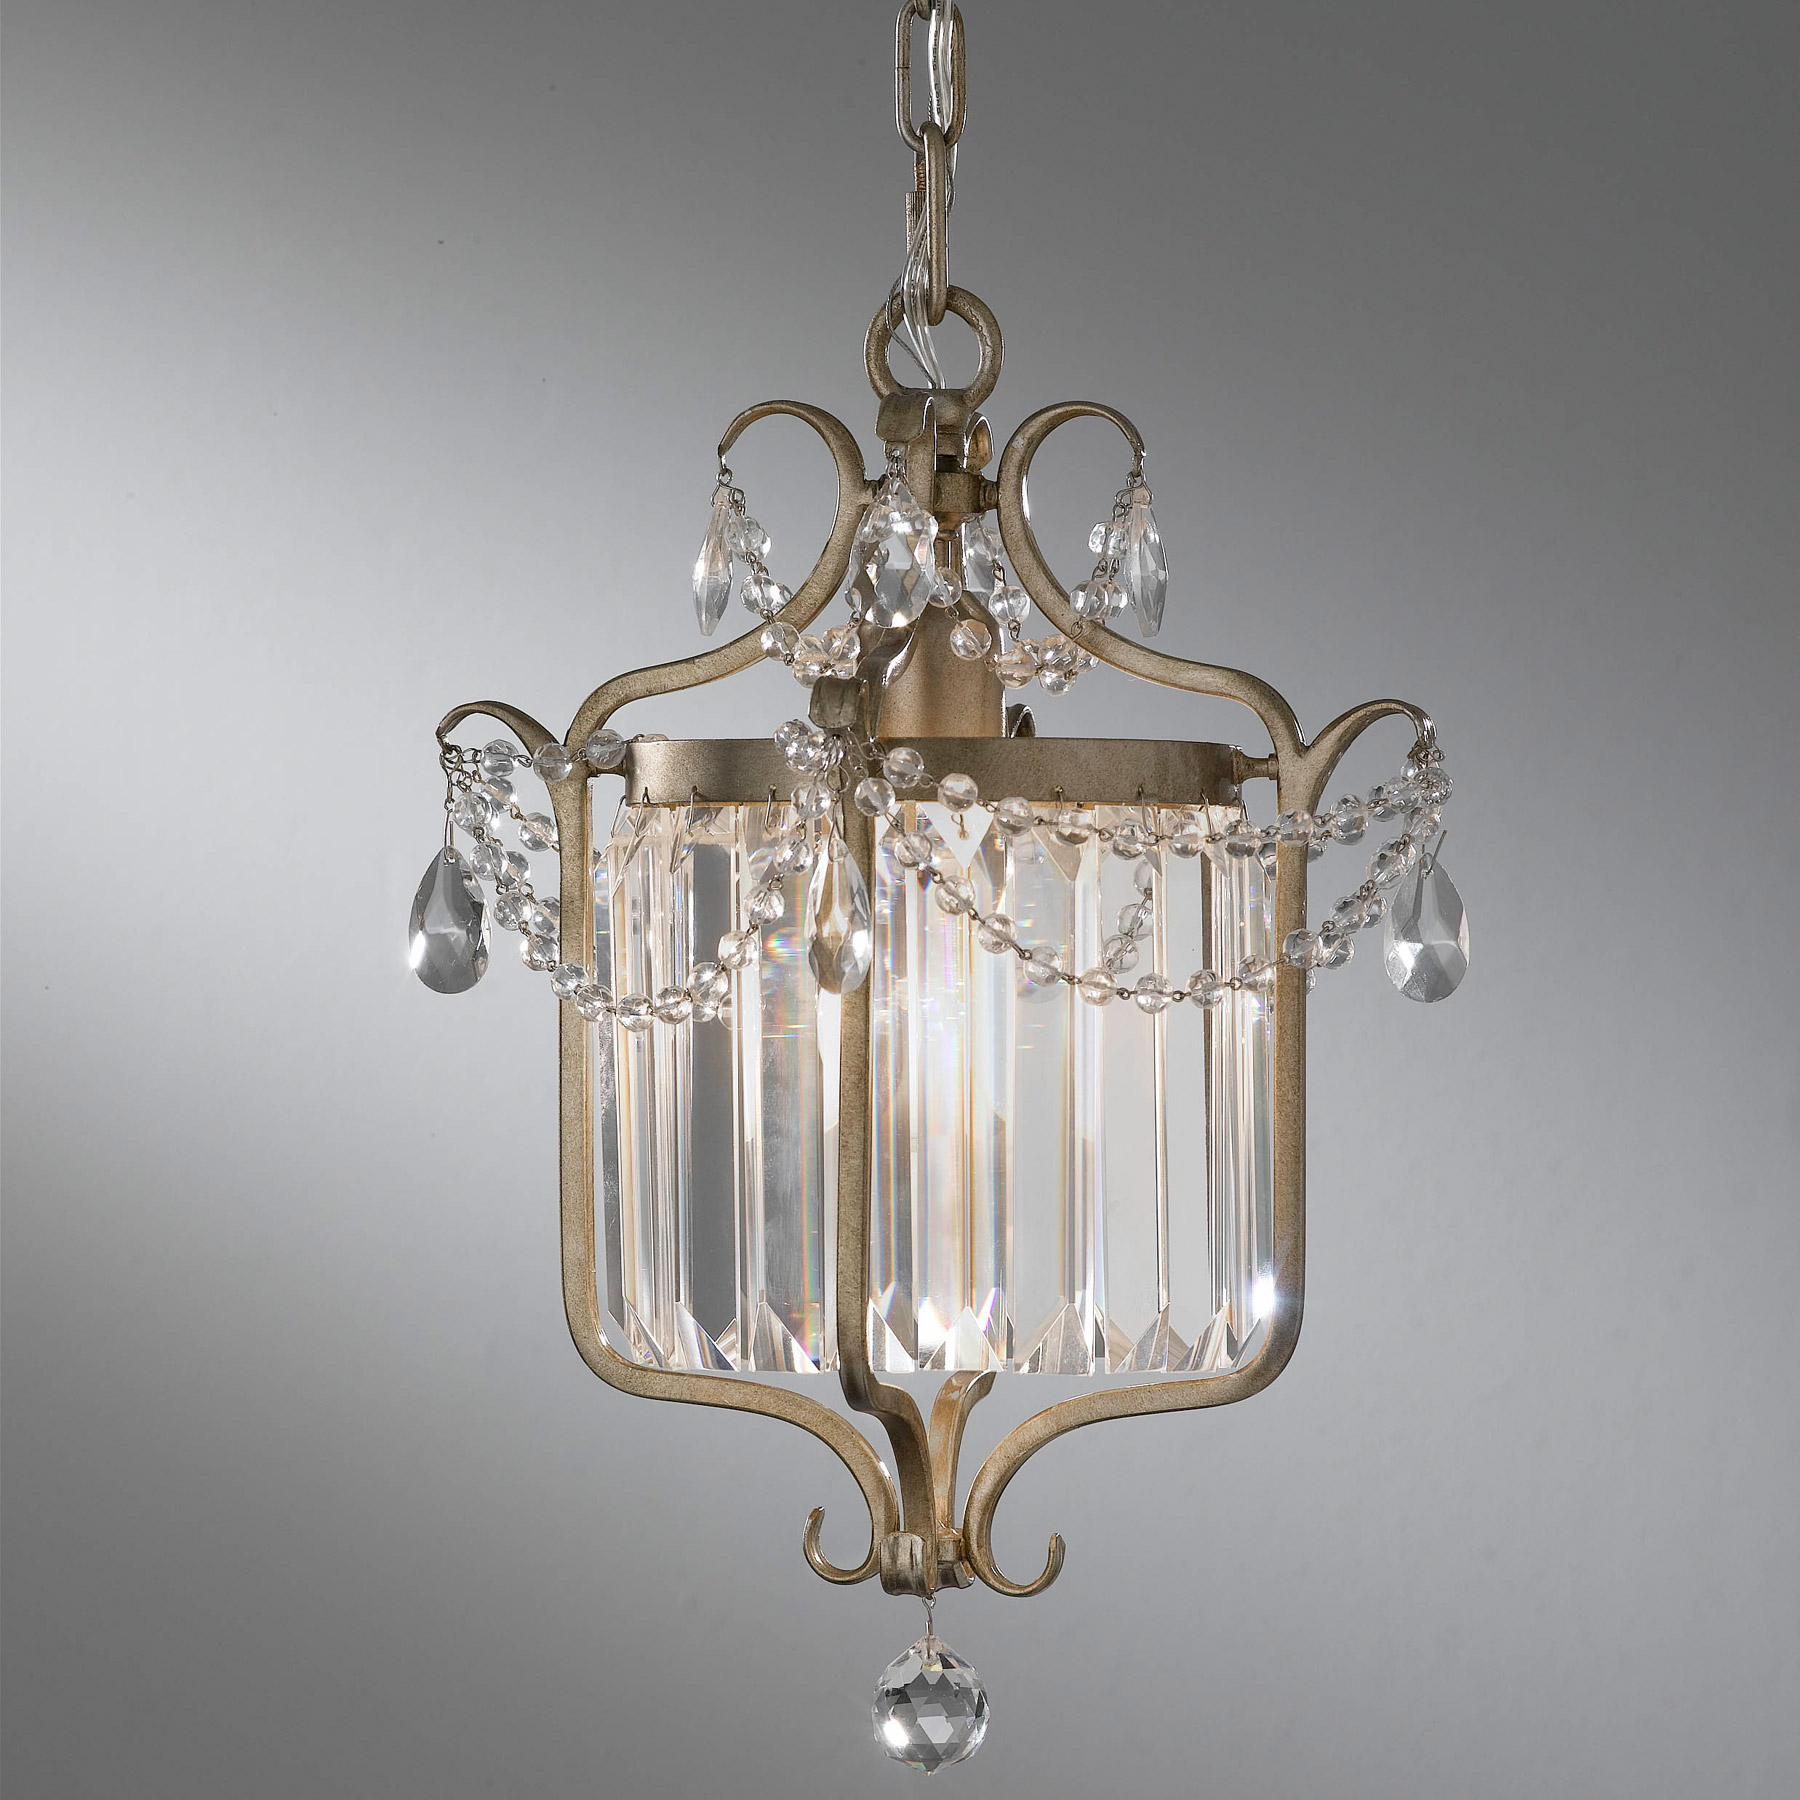 Murray Feiss F2473 1gs Crystal Gianna Mini Chandelier